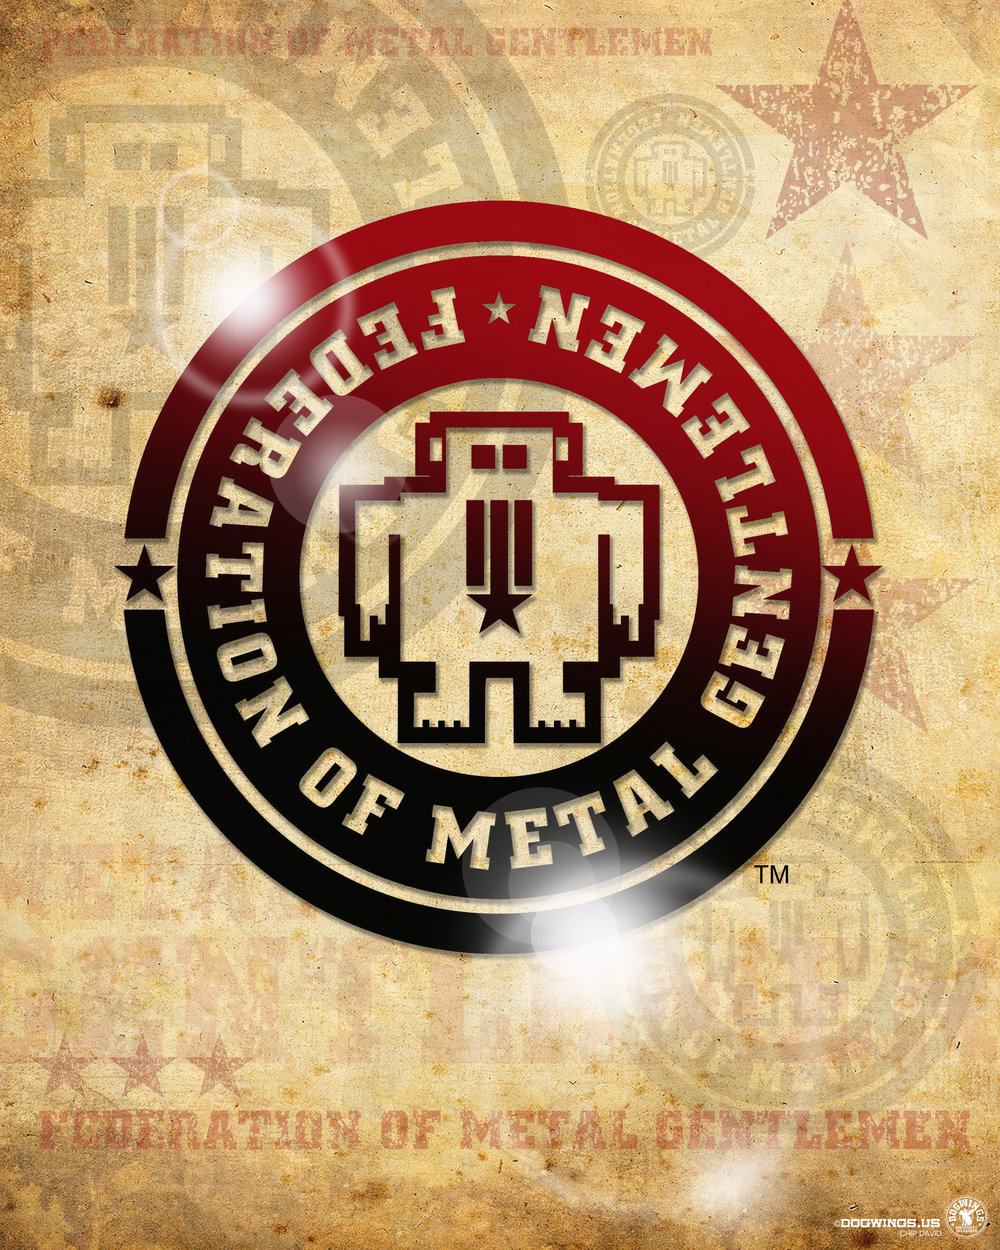 FEDERATION OF METAL GENTLEMEN:LOGO